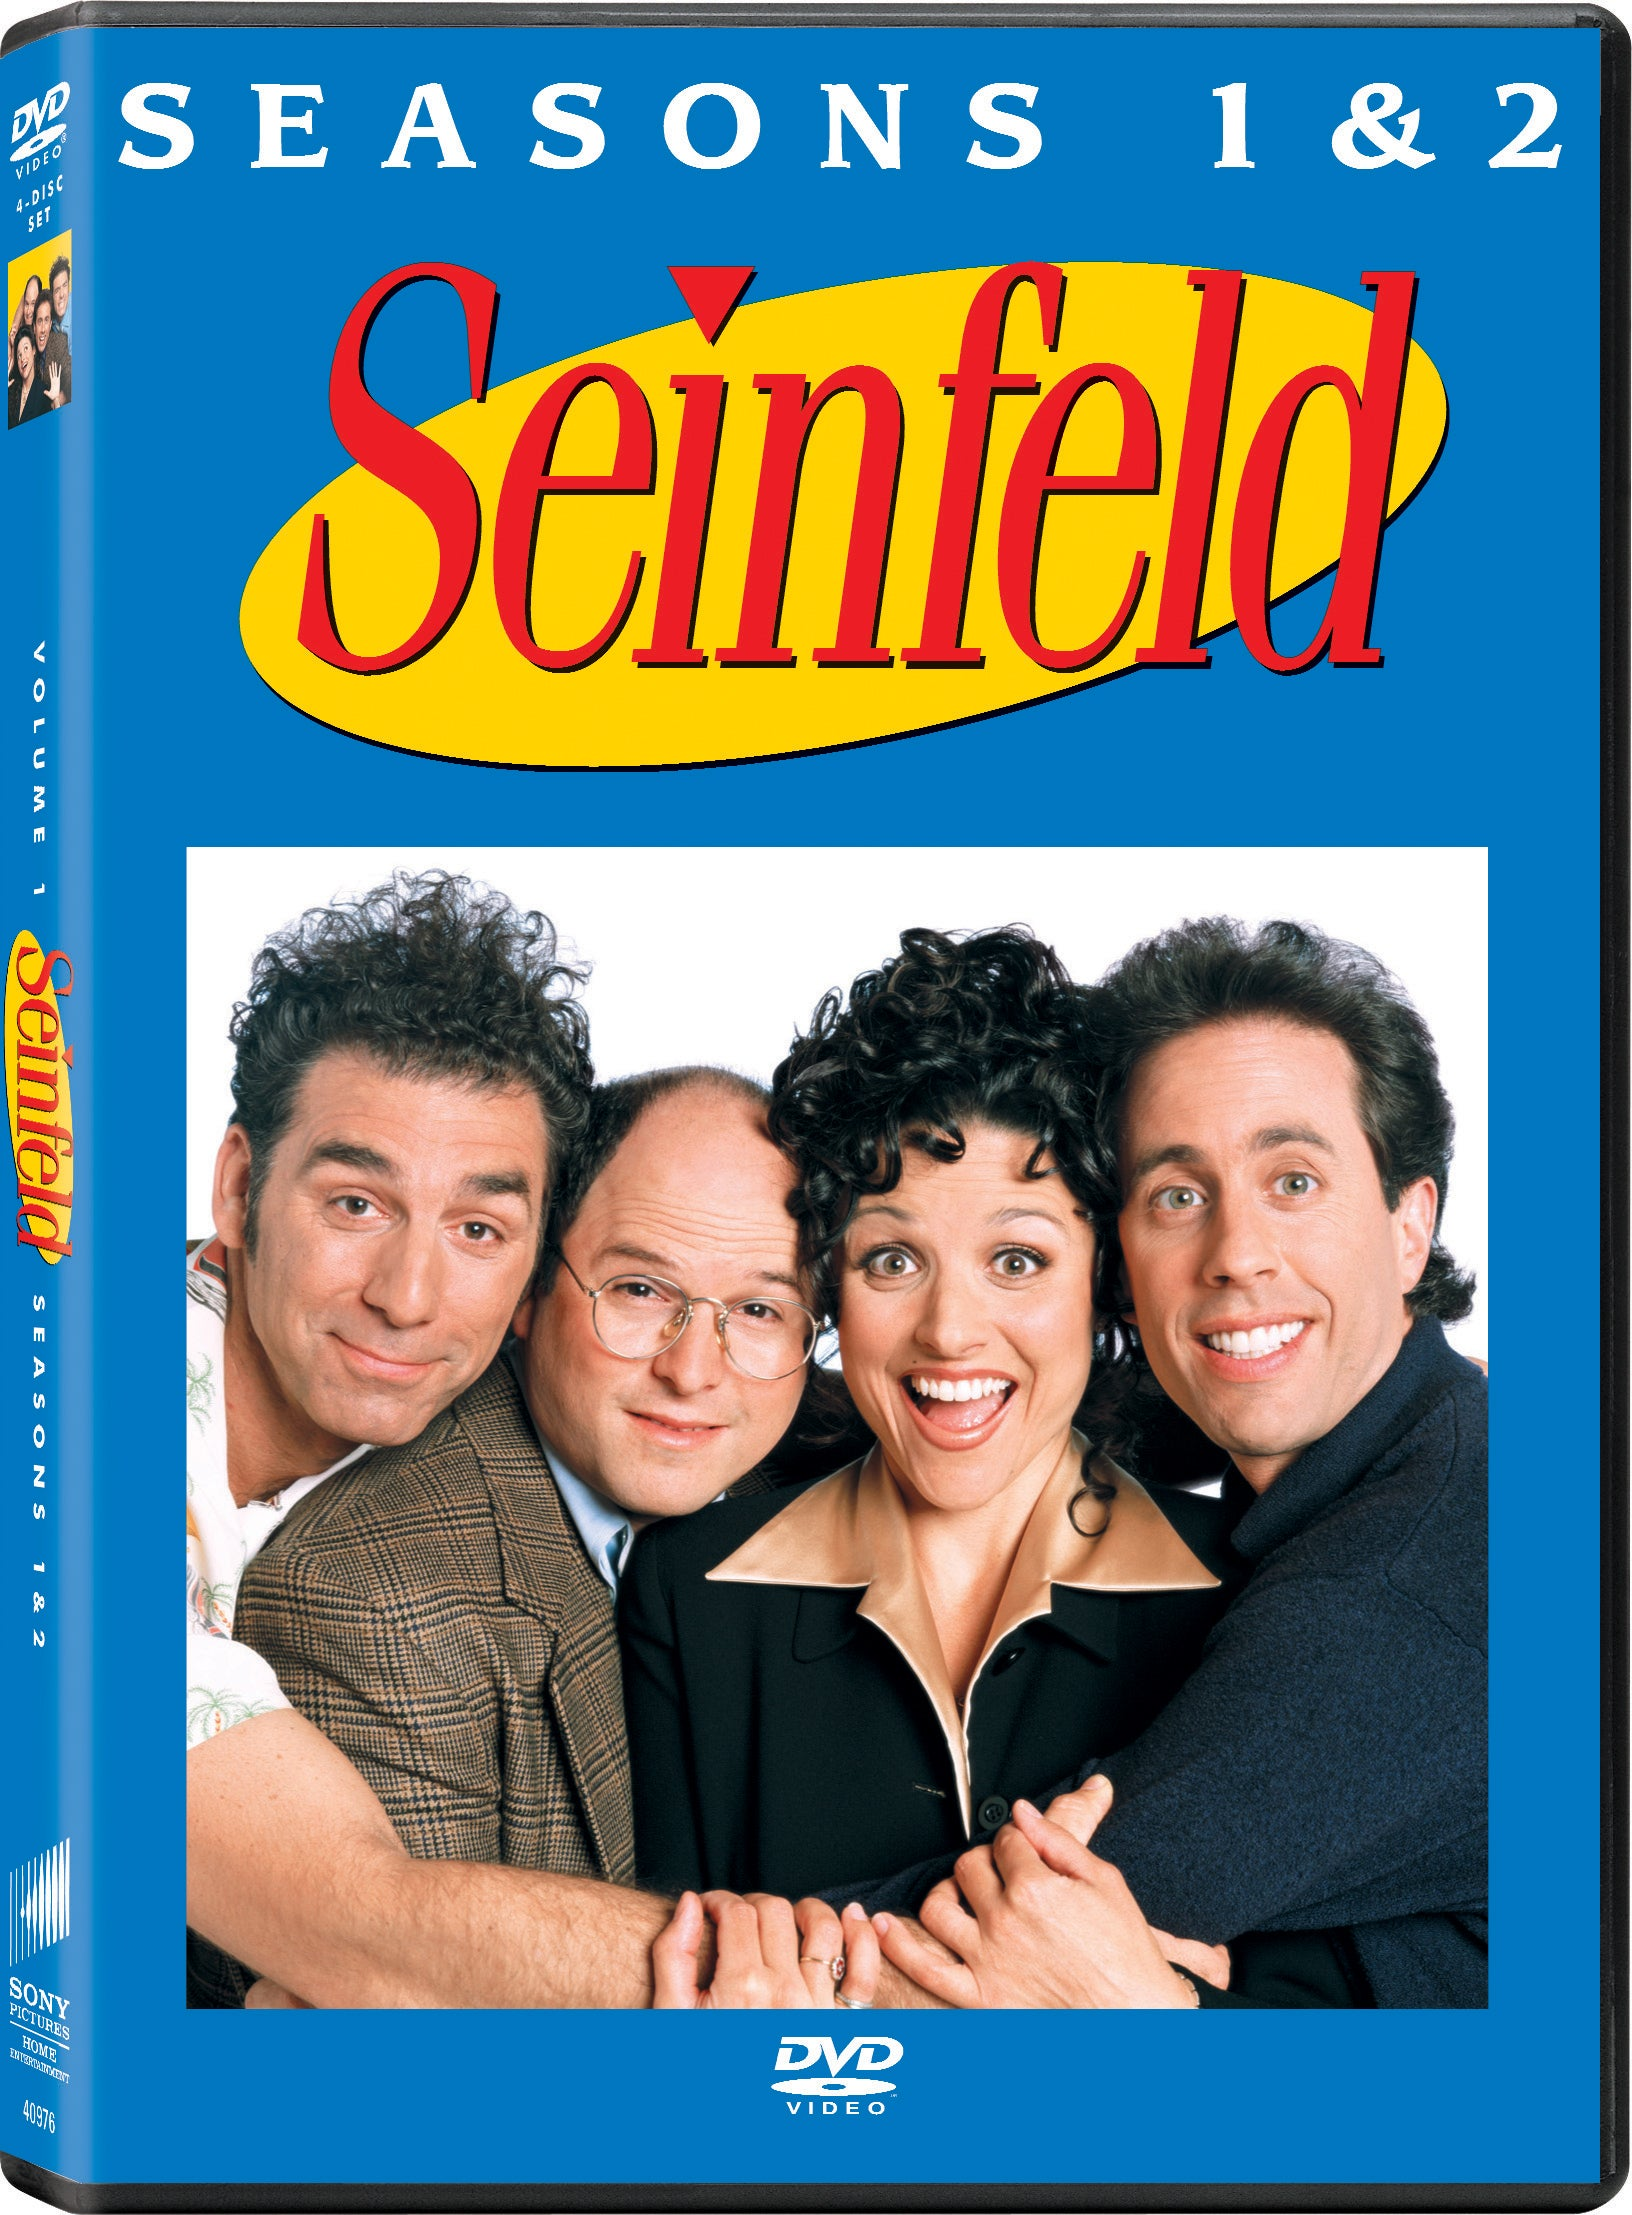 Seinfeld: The Complete Season 1 and 2 (DVD)